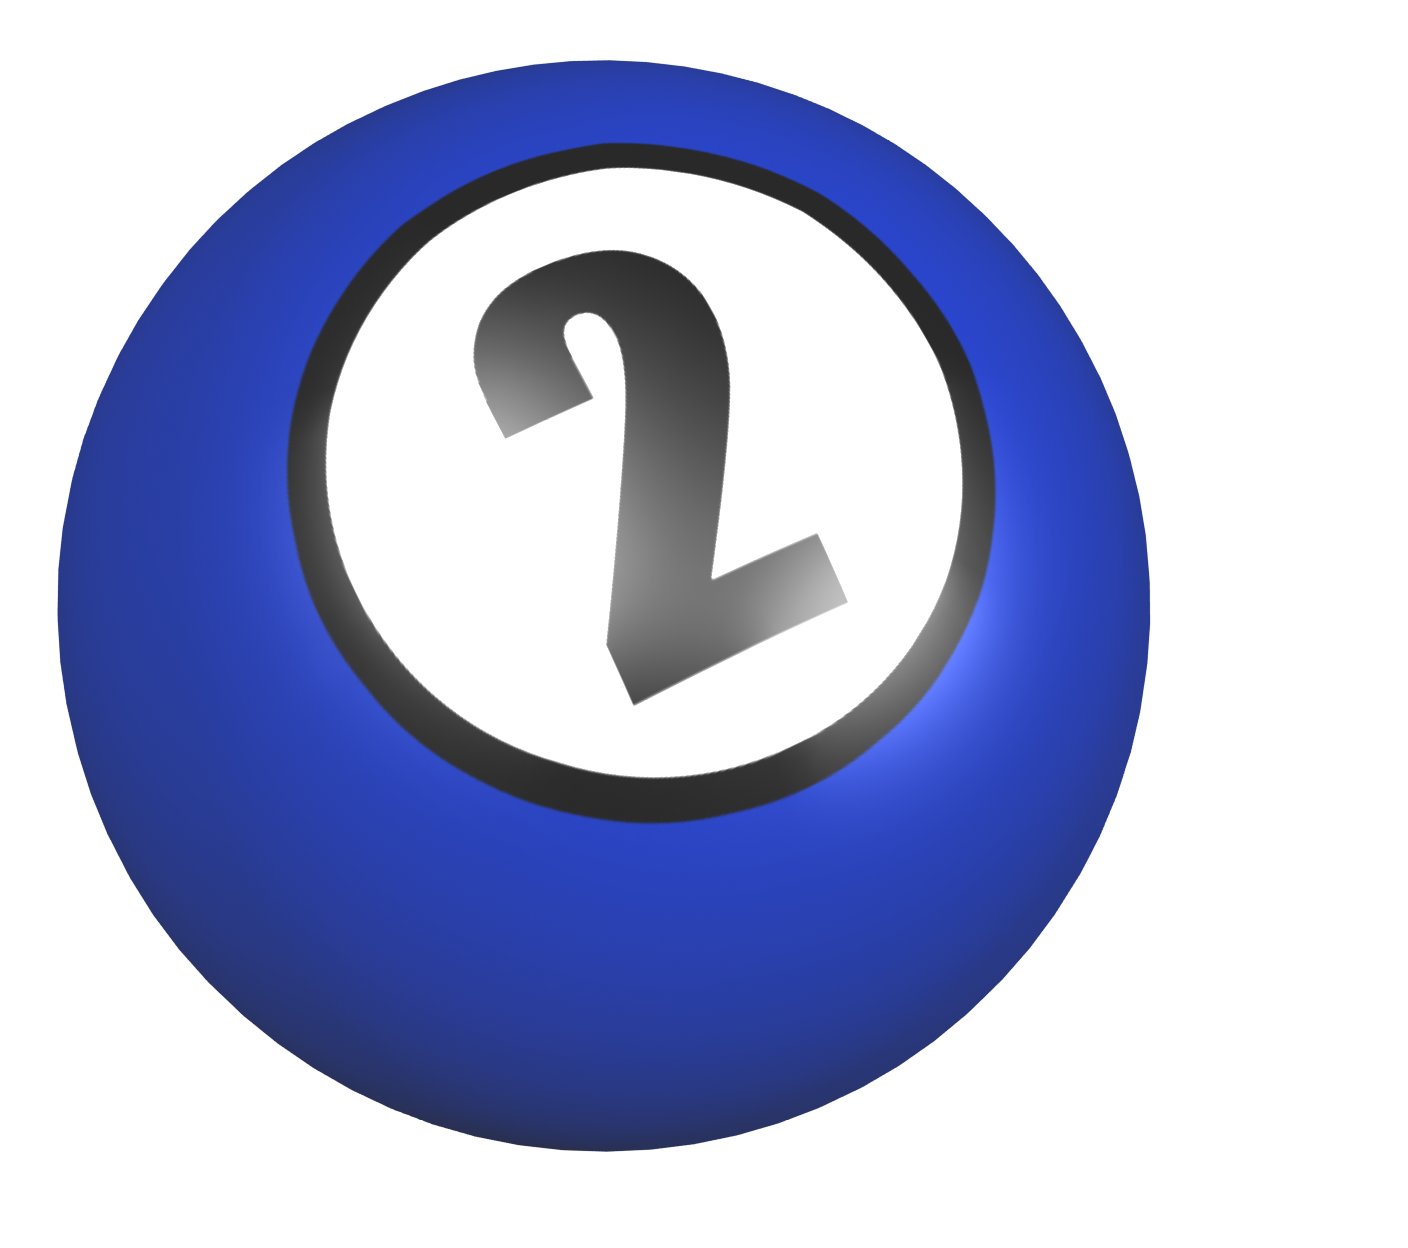 Number 2 Ball With Image From Clipart Fr-Number 2 Ball With Image From Clipart Free Clip Art Images-17